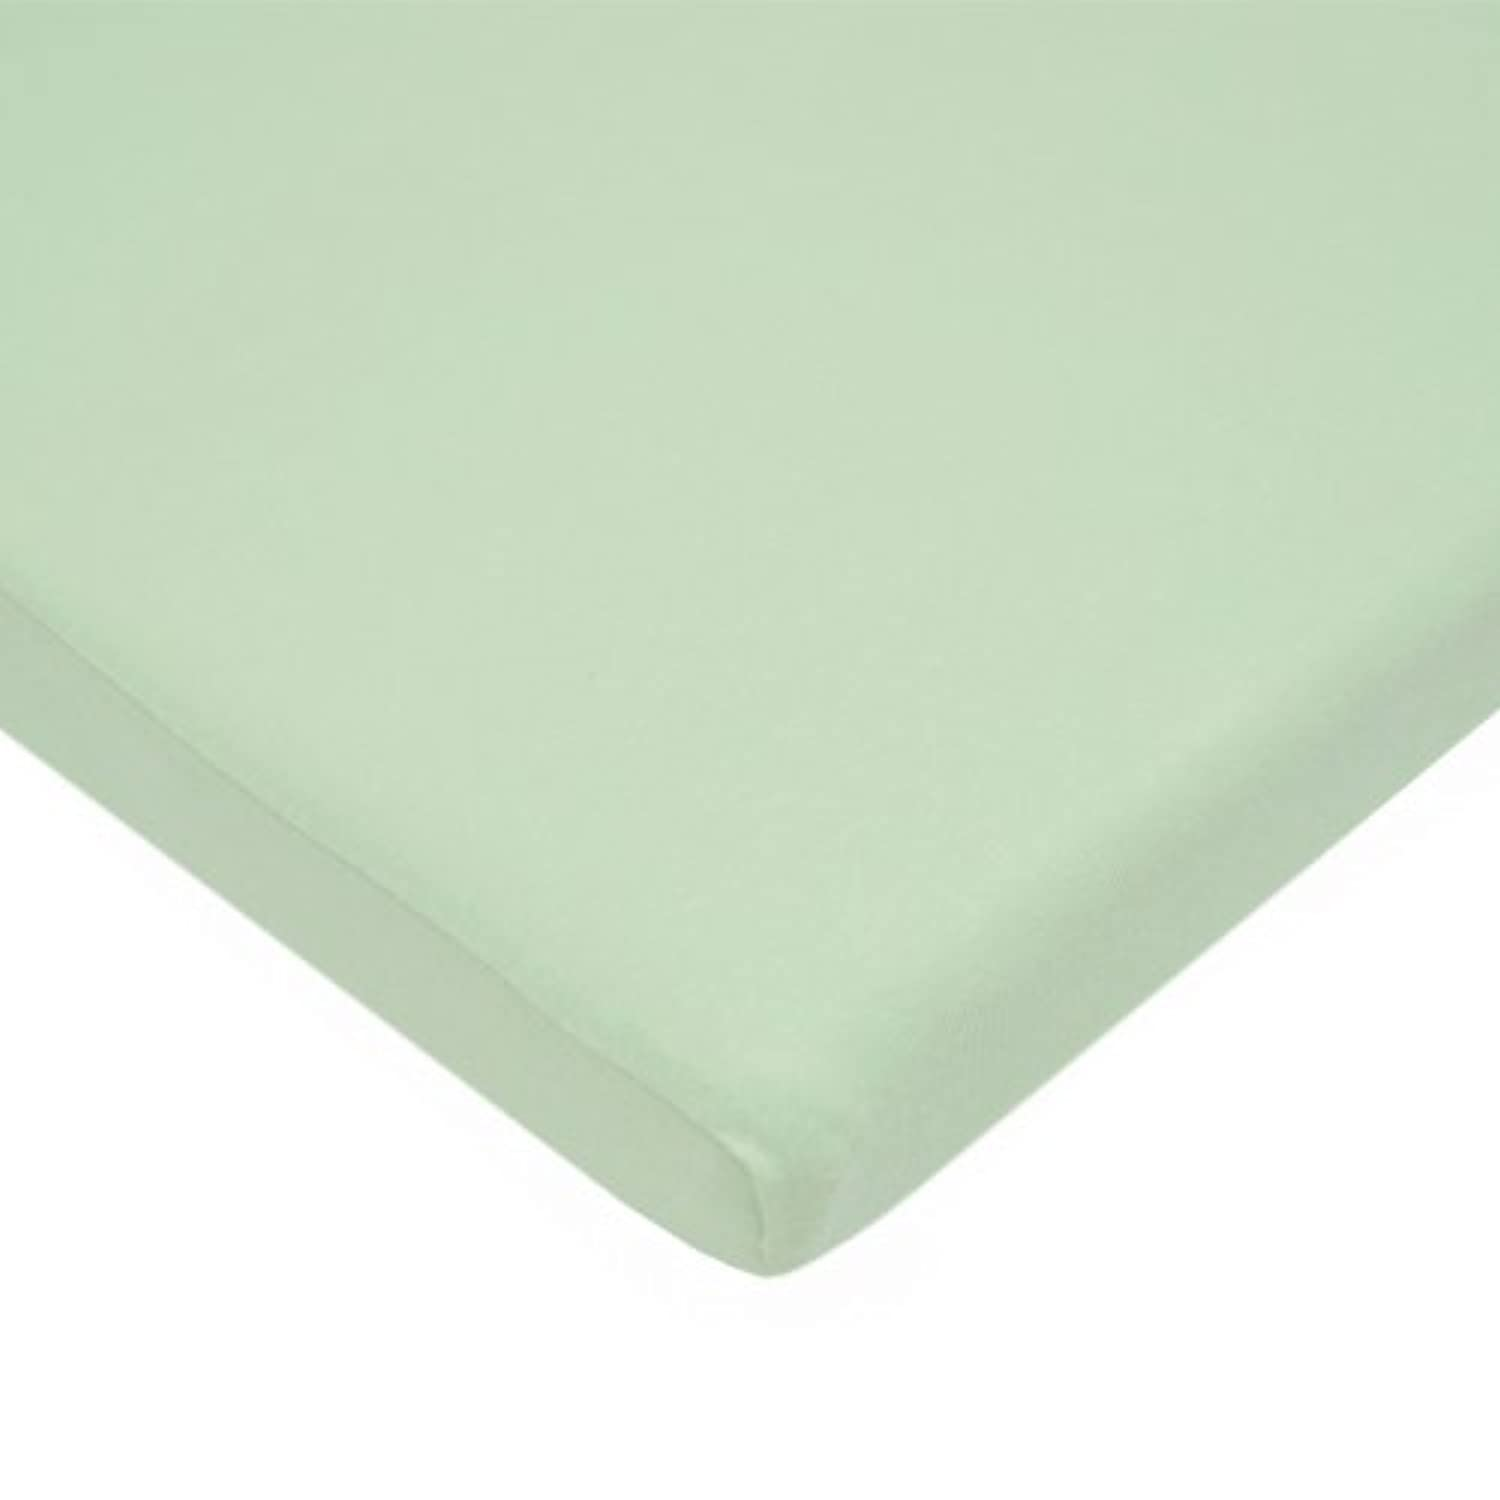 TL Care 100% Cotton Value Jersey Knit Fitted Bassinet Sheet, Celery by TL Care